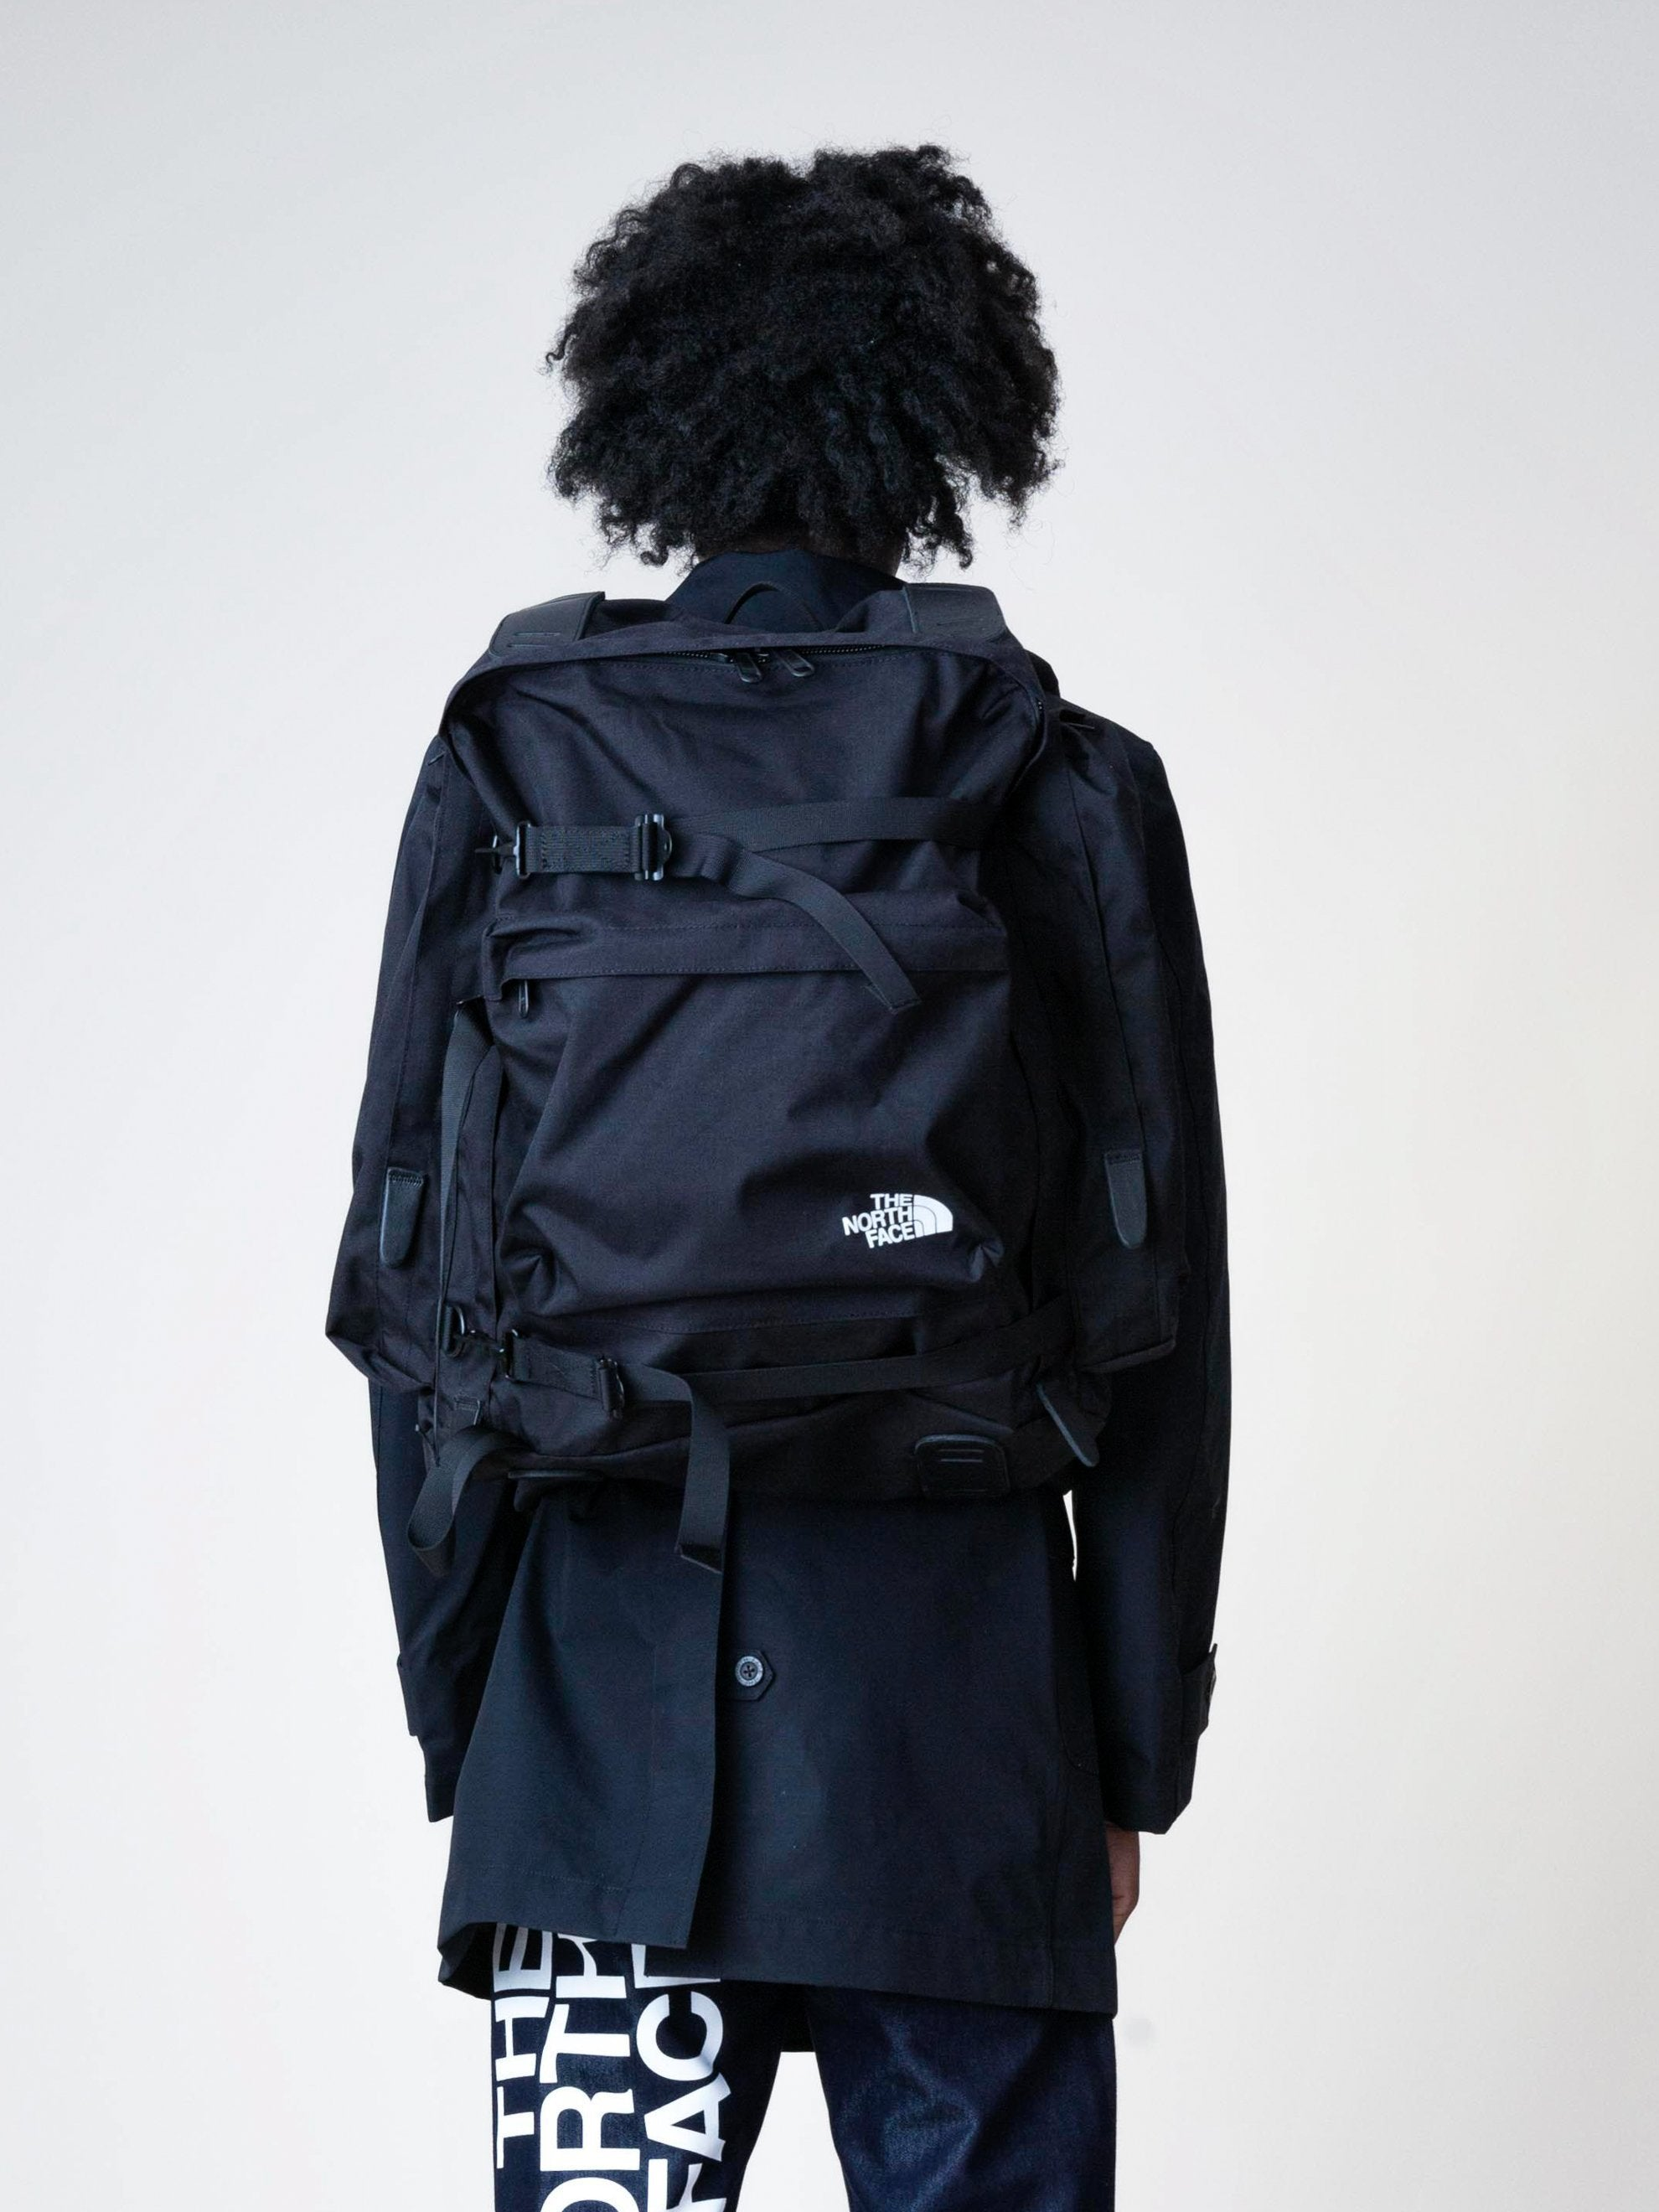 Black The North Face Backpack 4